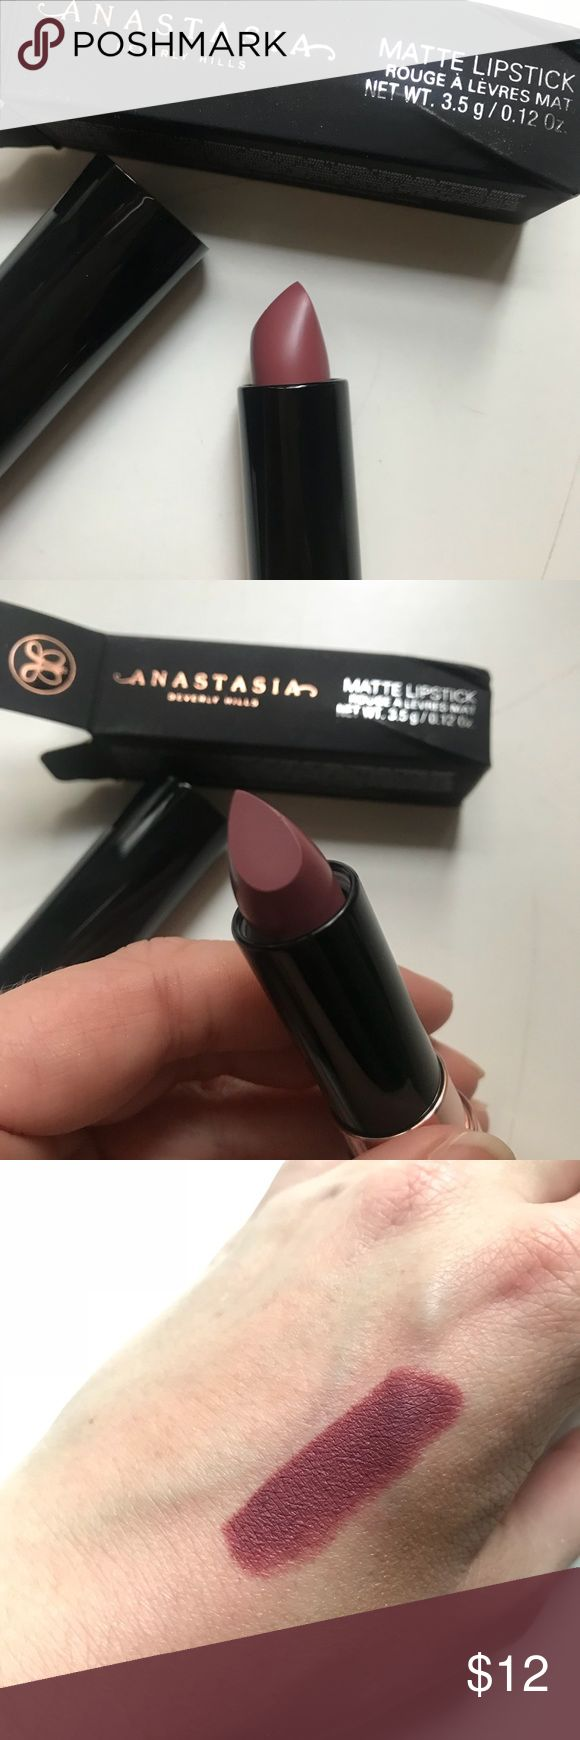 Anastasia Beverly Hills Matte Lipstick -Dead Roses Accidentally bought two during the Black Friday sales. Product is untouched and comes in original packaging (box was a little squished in shipping but product is not damaged). Swatches are from my own product. Unique grey mauve shade. Very pigmented. Cool tone is great for this time of year! Anastasia Beverly Hills Makeup Lipstick